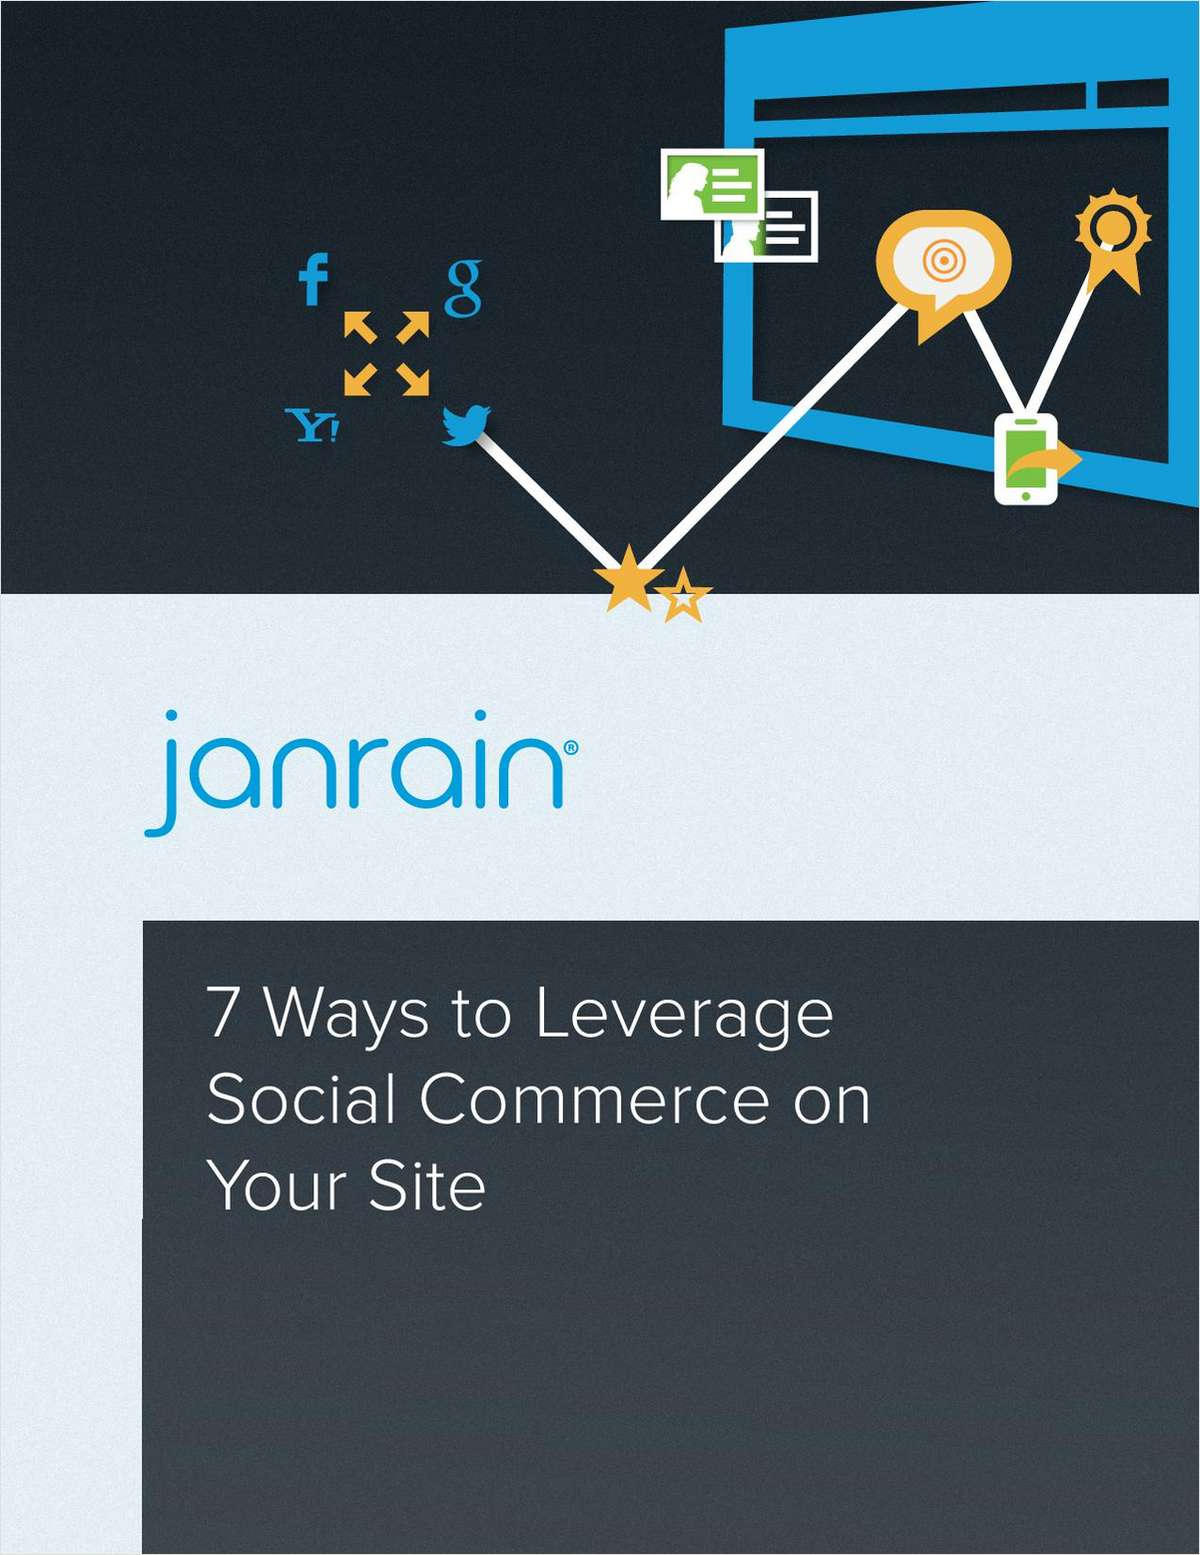 7 Ways to Leverage Social Commerce on Your Site